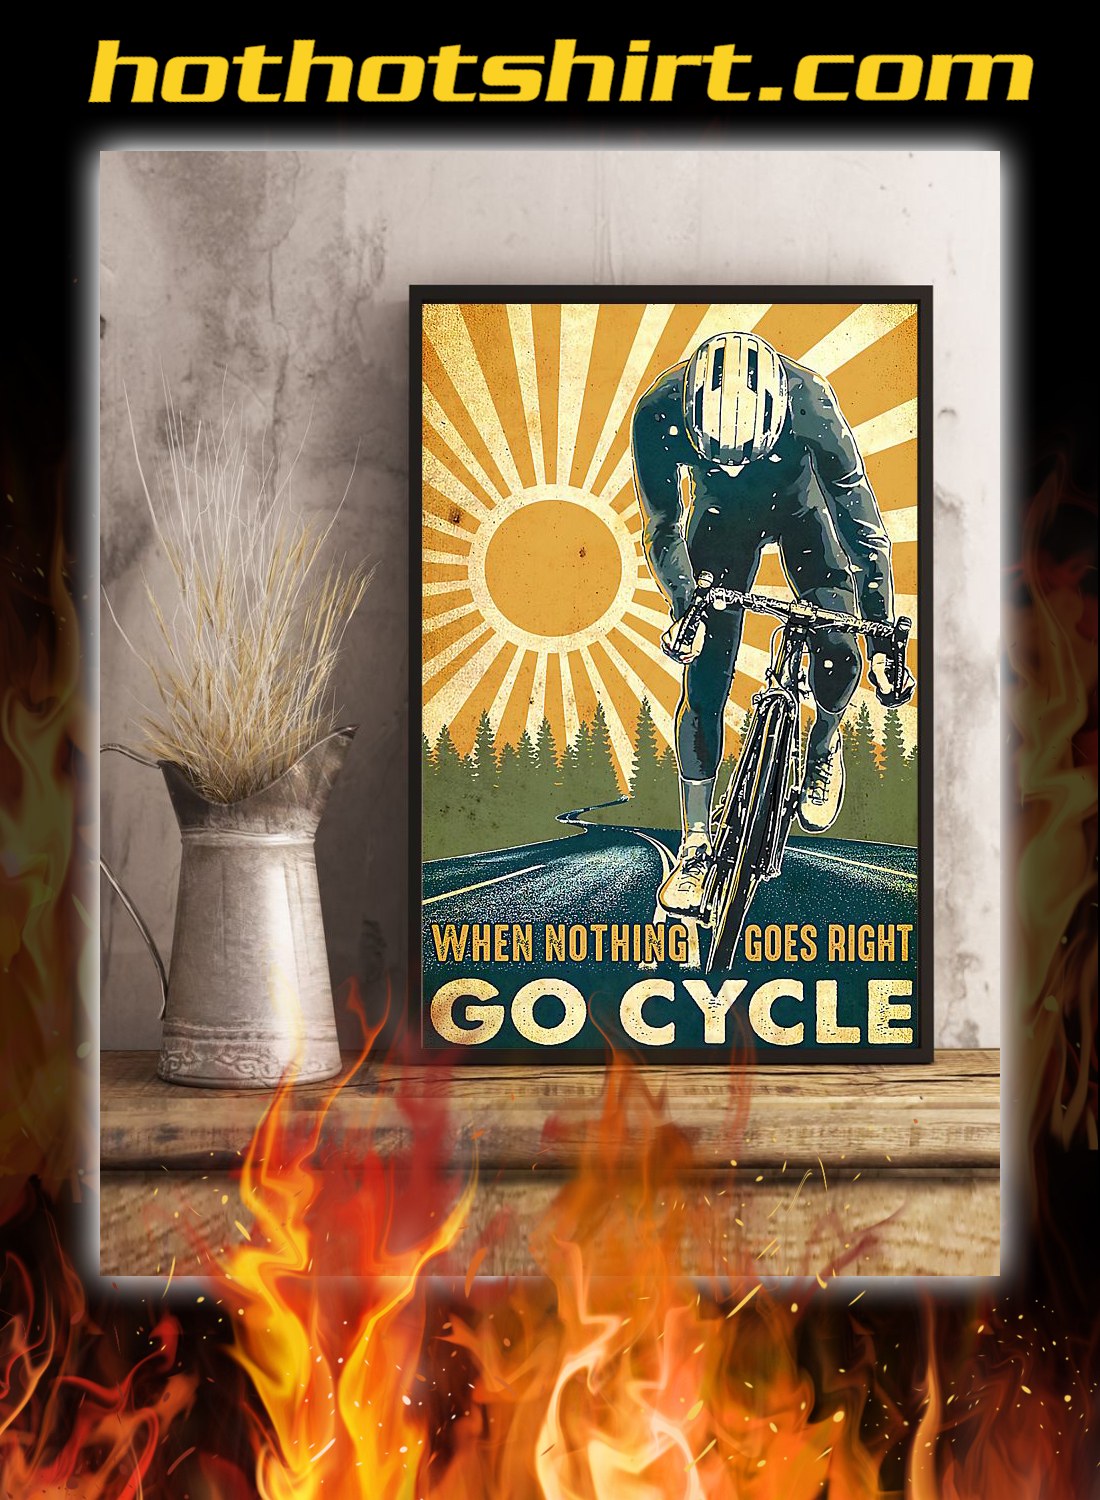 When nothing goes right go cycle poster 2